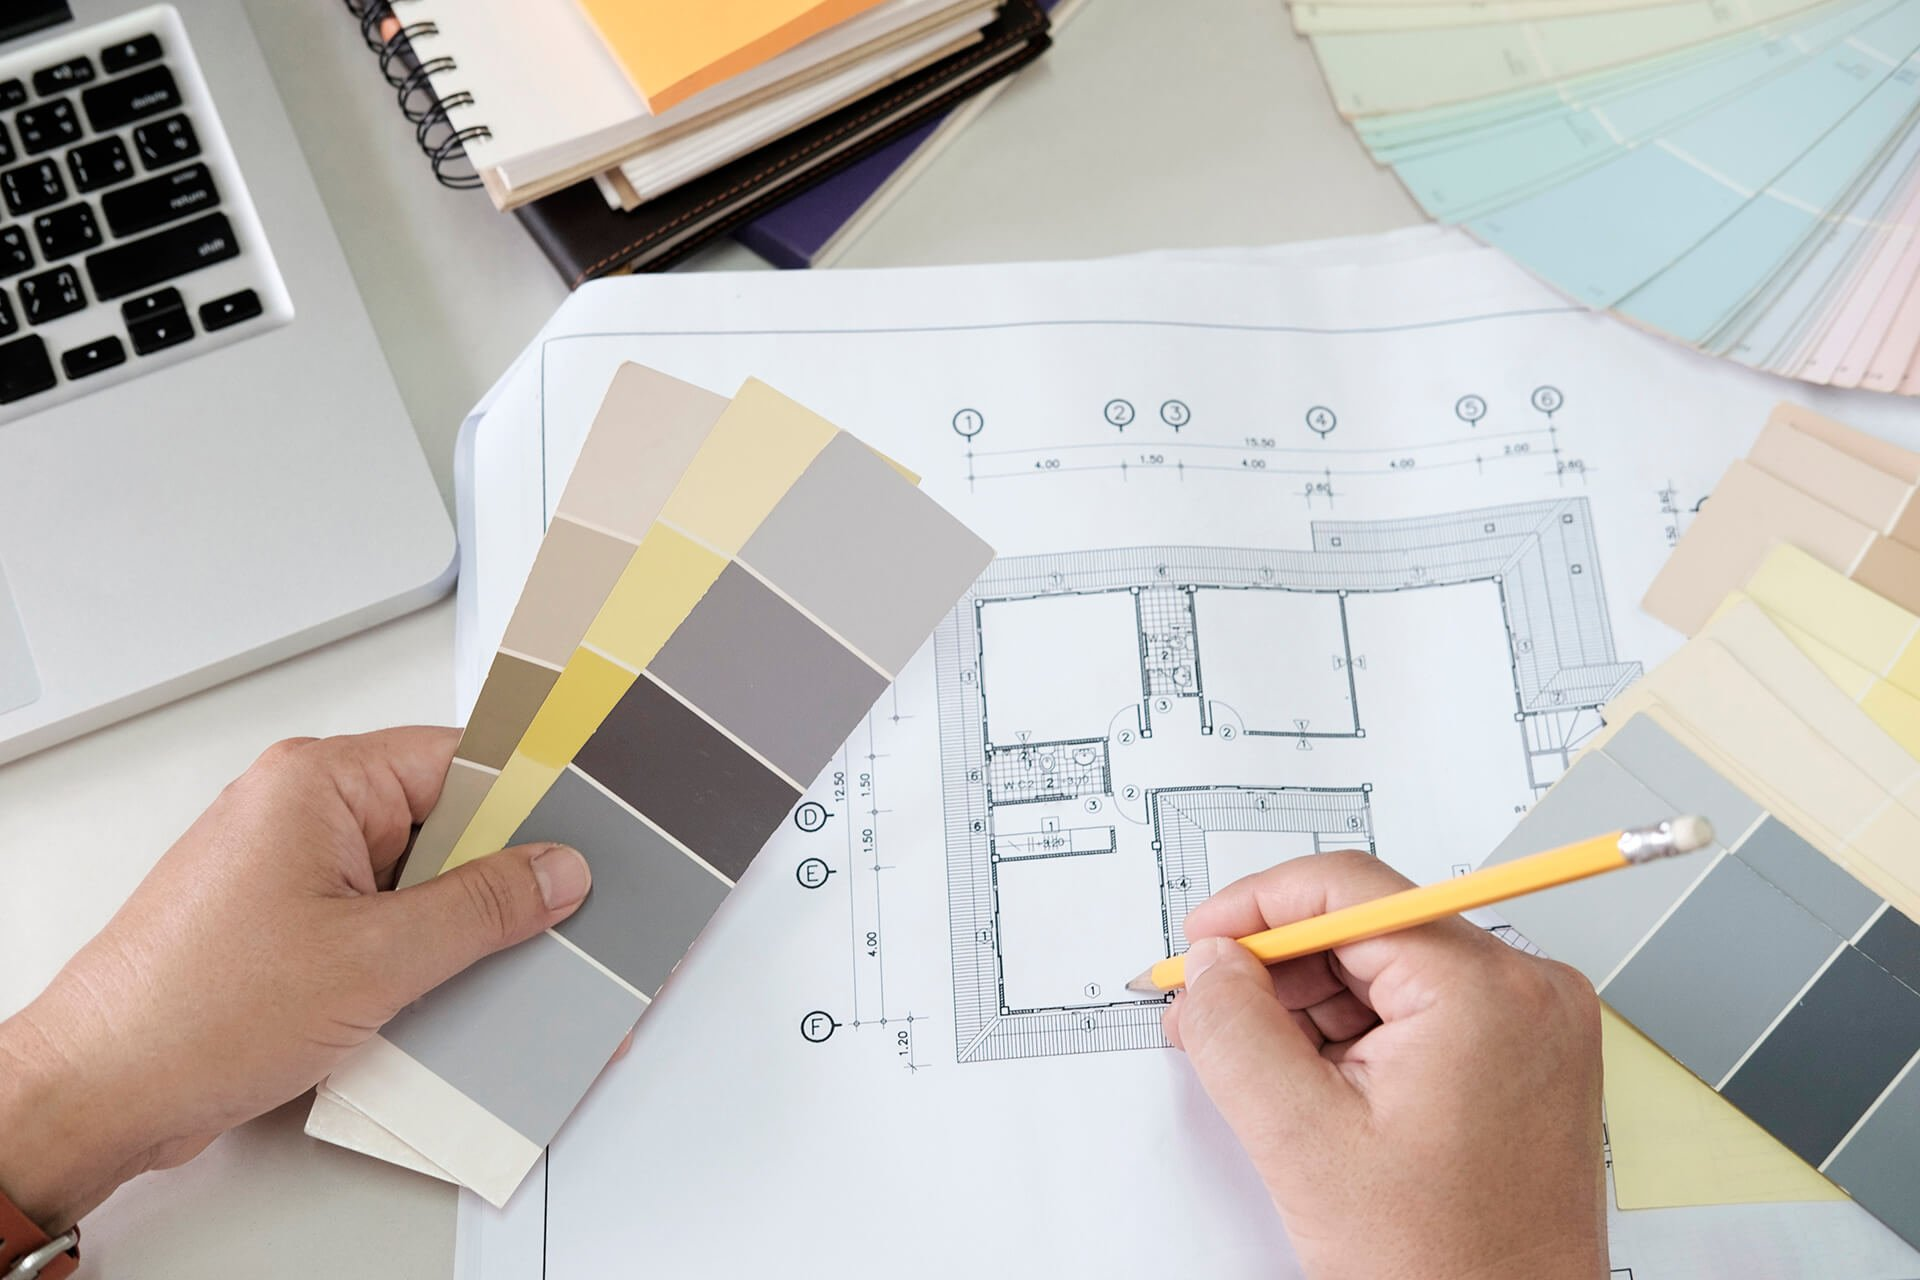 graphic-design-color-swatches-pens-desk-architectural-drawing-with-work-tools-accessories (1)